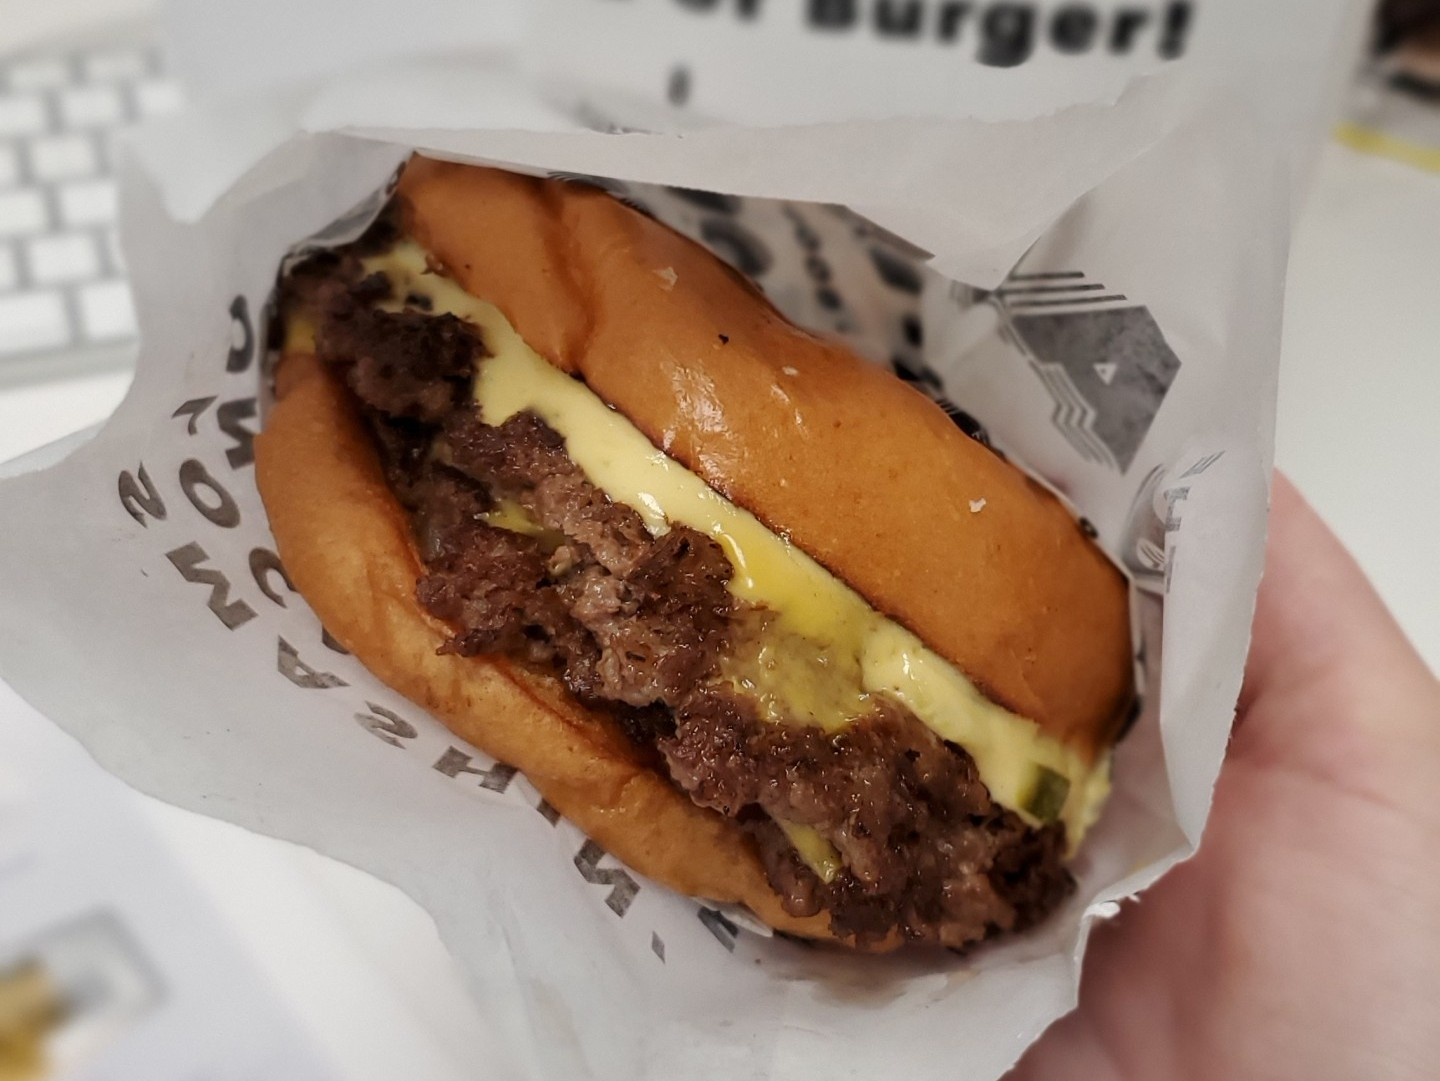 Favorite burger from The Daley